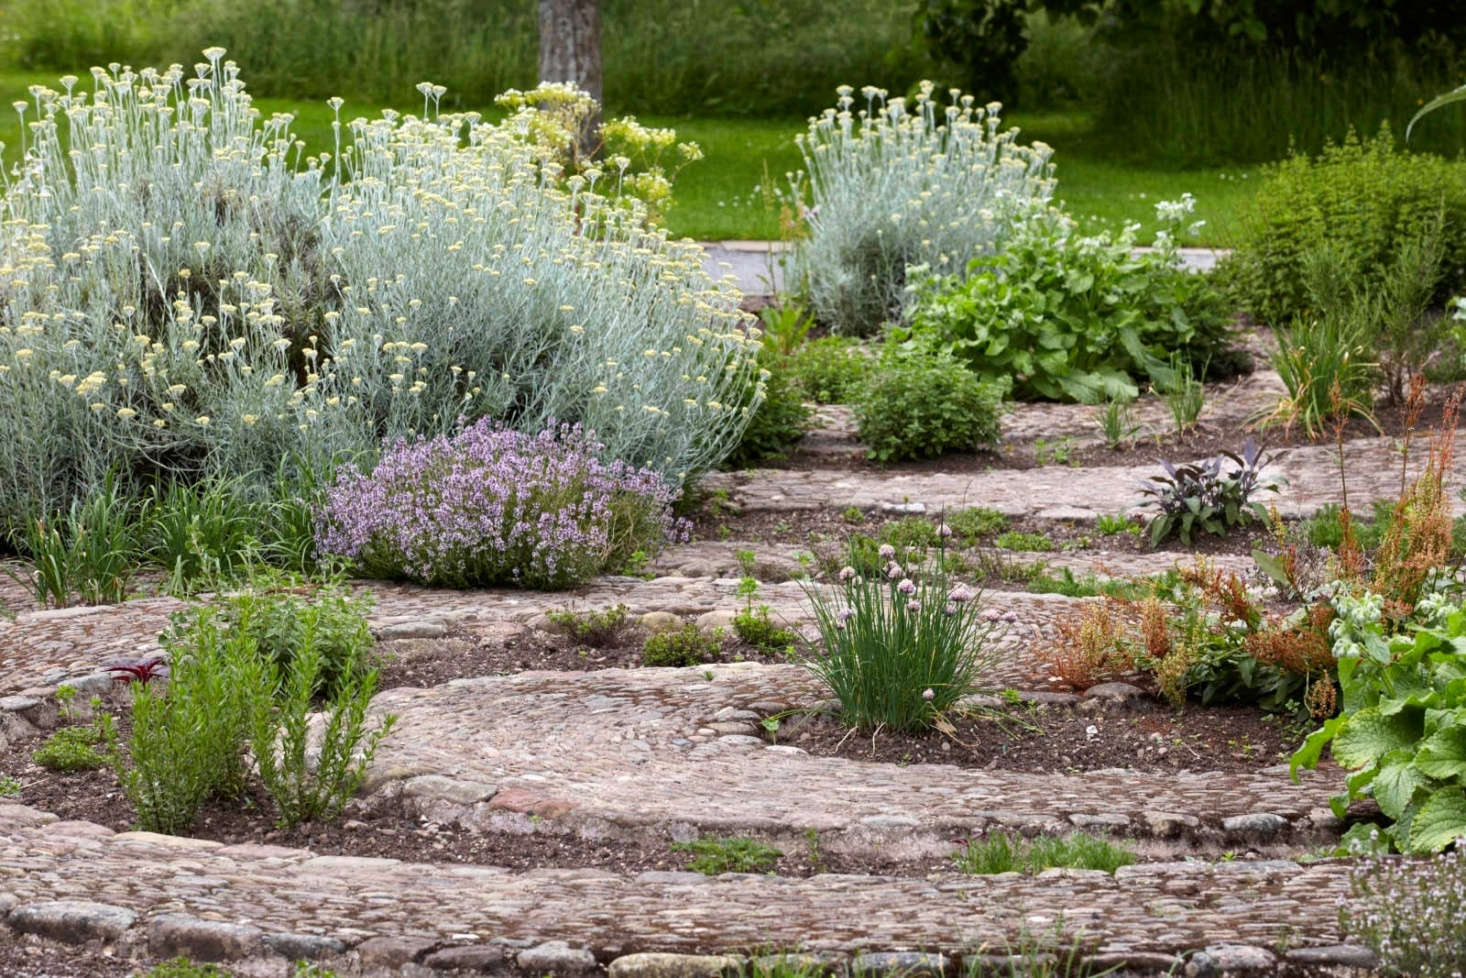 The herb garden is next to the orchard at Hampton Court Castle. Photograph by Britt Willoughby Dyer.